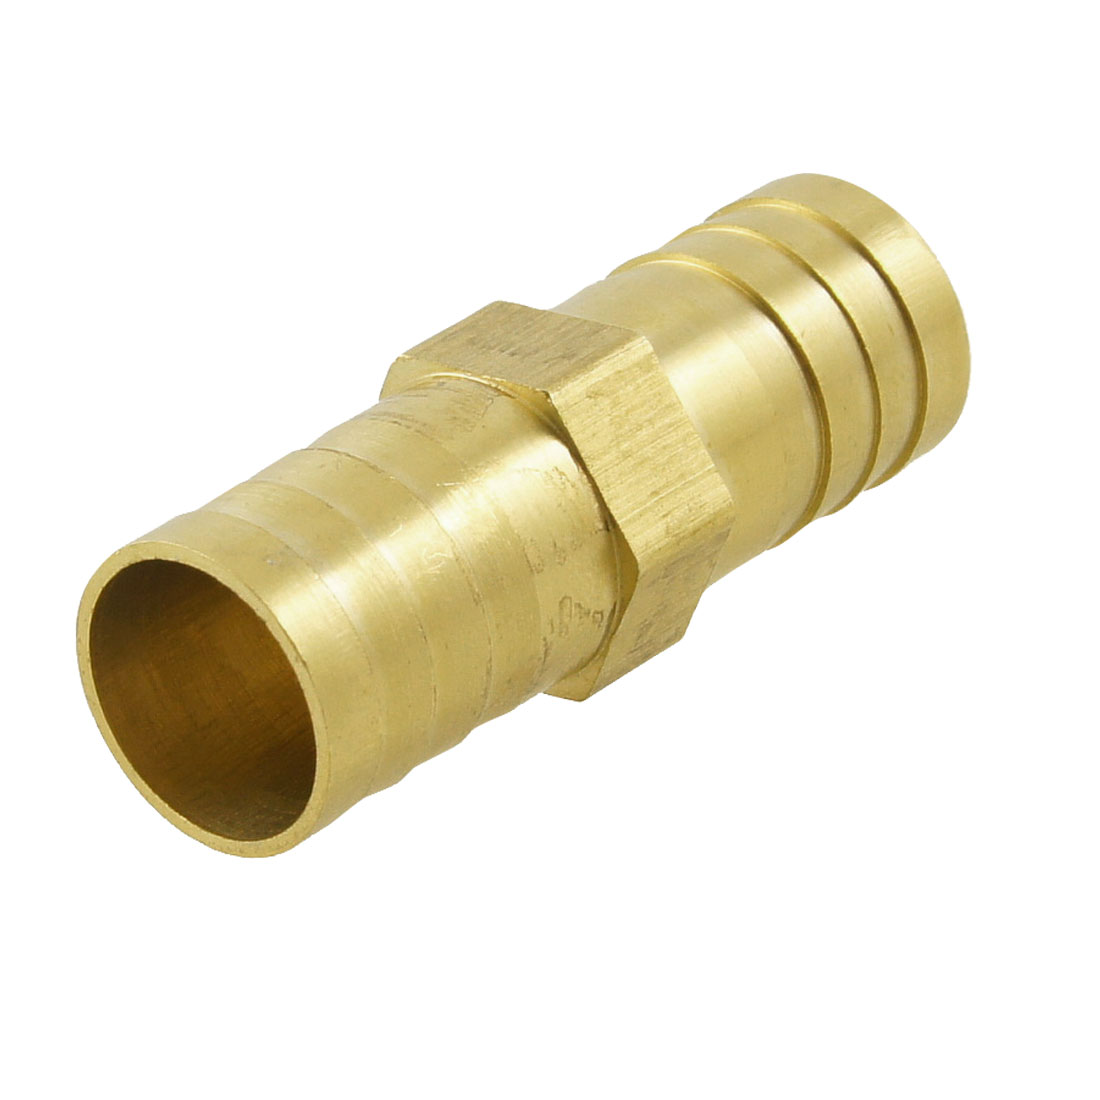 "1/4"" to 1/4"" Brass Equal Straight Barb Connector Tube Fitting 47mm Long"